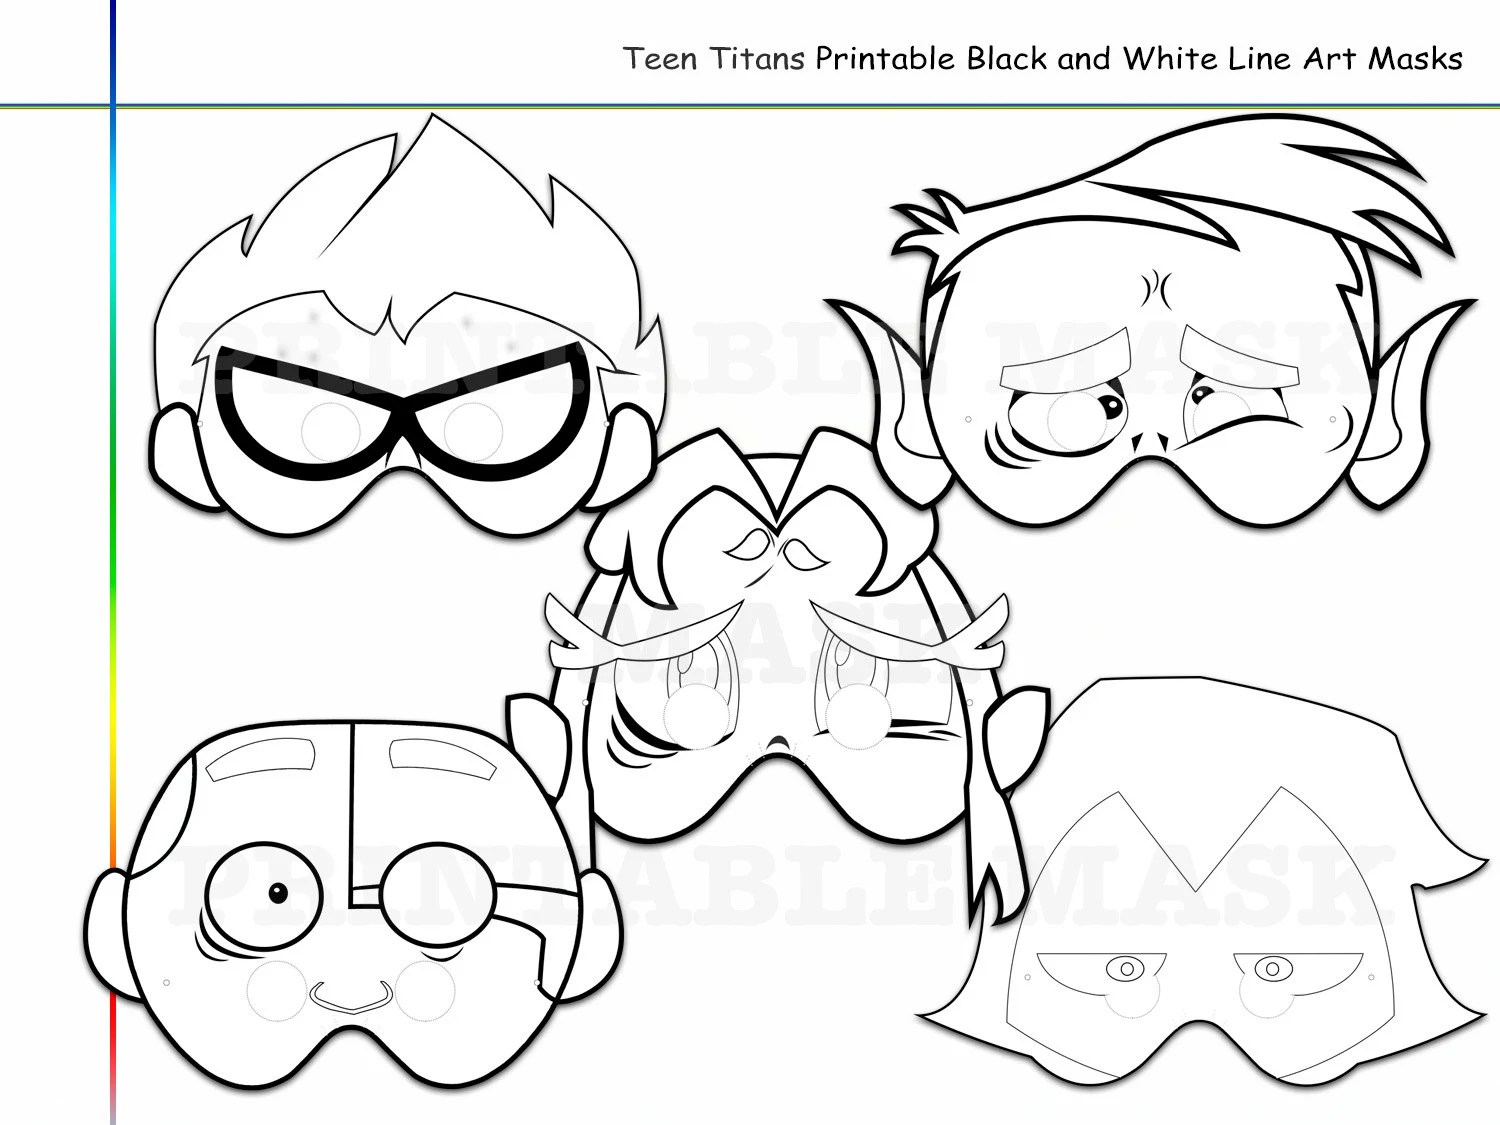 Coloring Pages Superhero Kids Printable Black And White Line